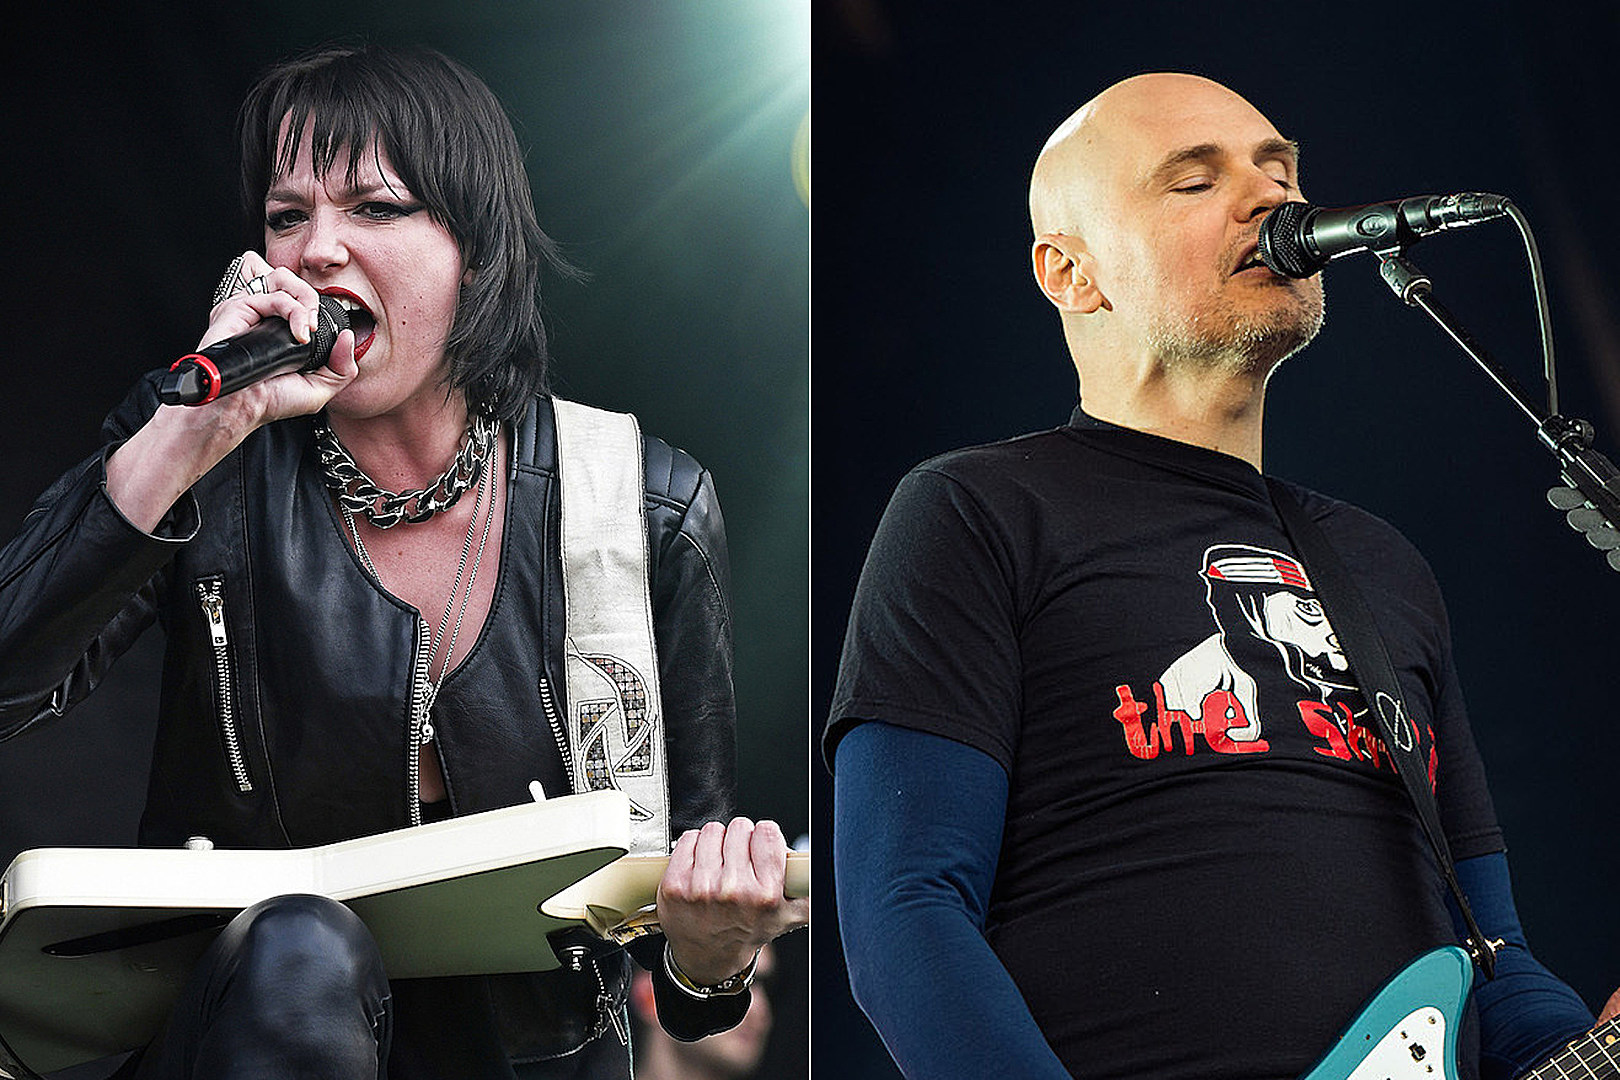 Lzzy Hale Joins Smashing Pumpkins for 'Stairway to Heaven' Cover in Nashville